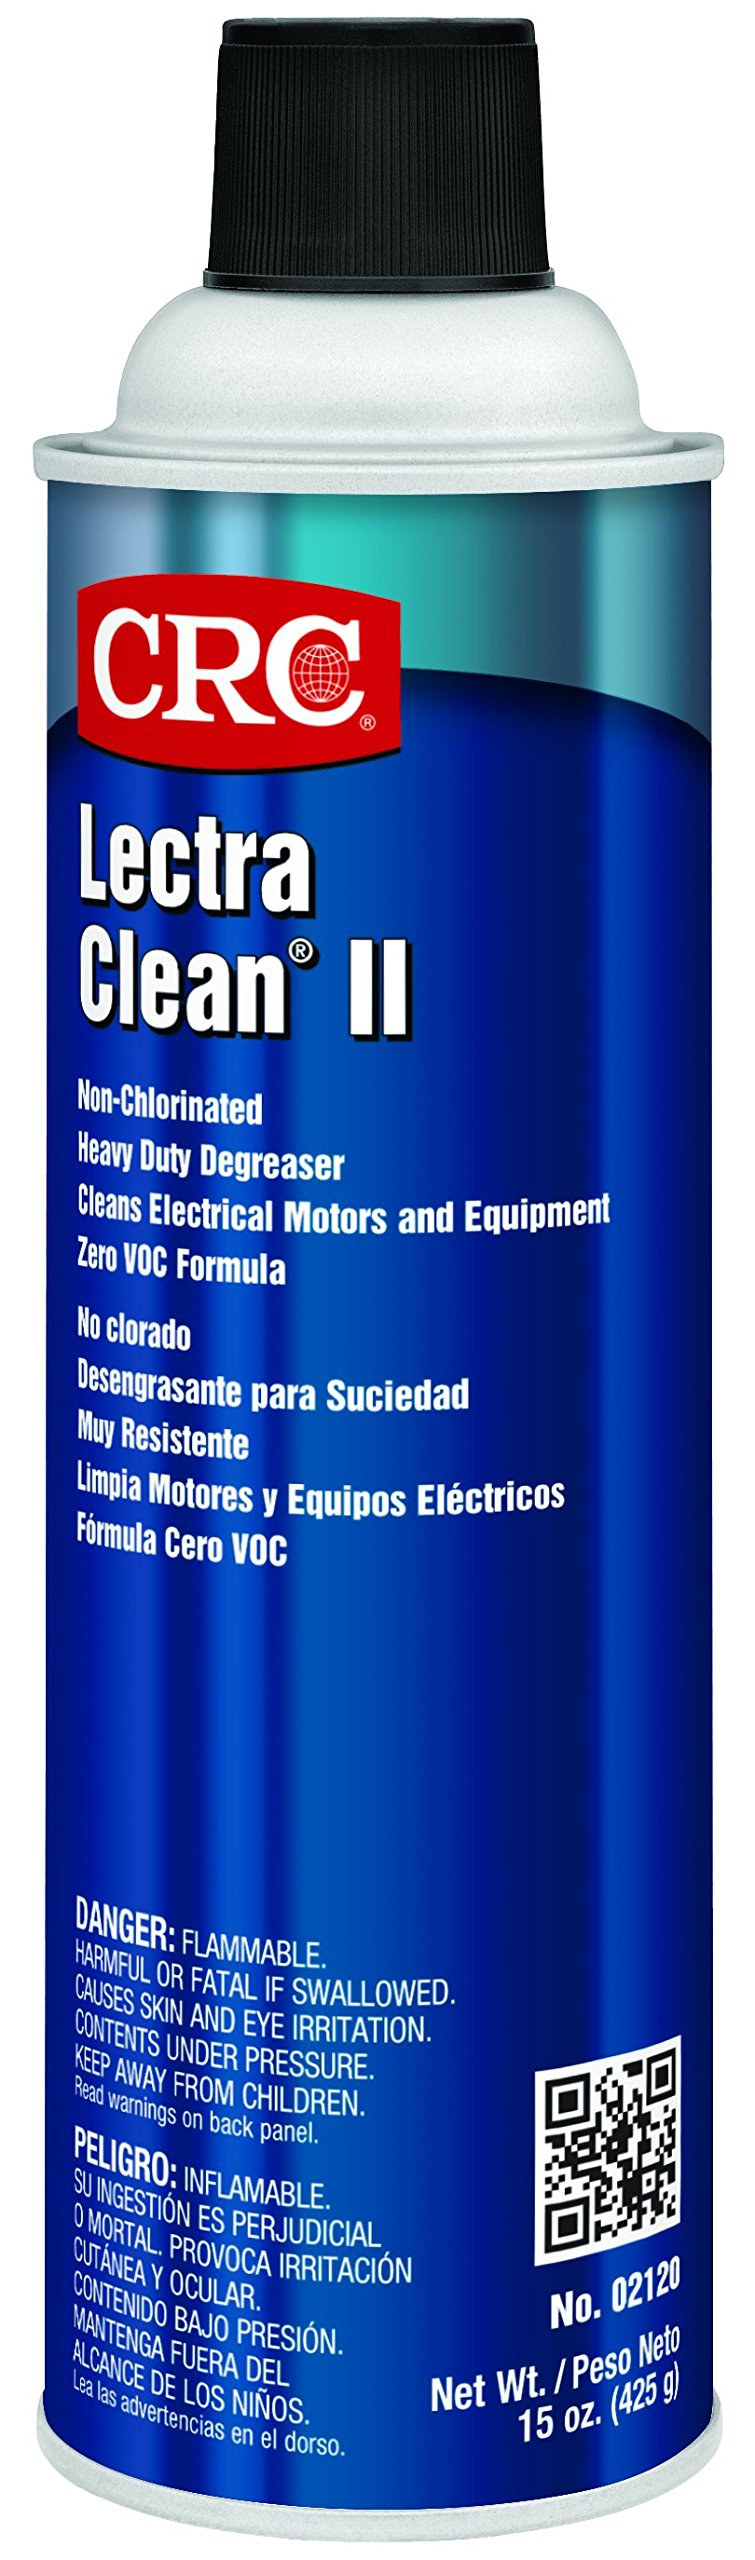 CRC Lectra Clean II Non-Chlorinated Heavy Duty Liquid Degreaser, 15 oz Aerosol Can, Clear